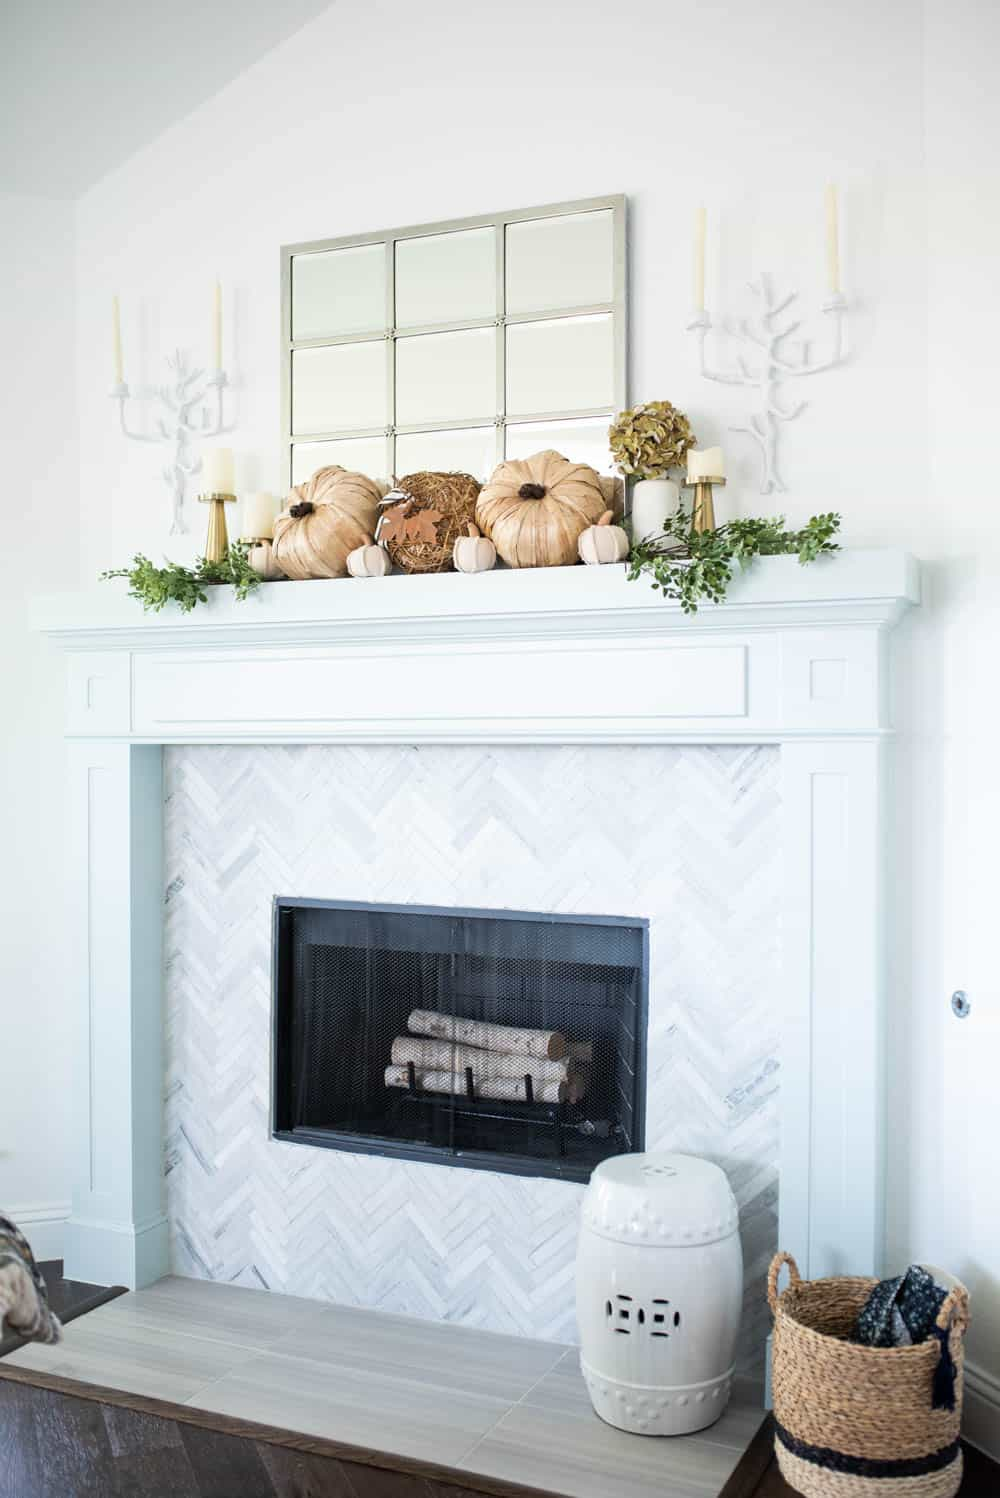 25 inspiring fall mantel decorating ideas a blissful nest - How to furnish a small bedroom ...